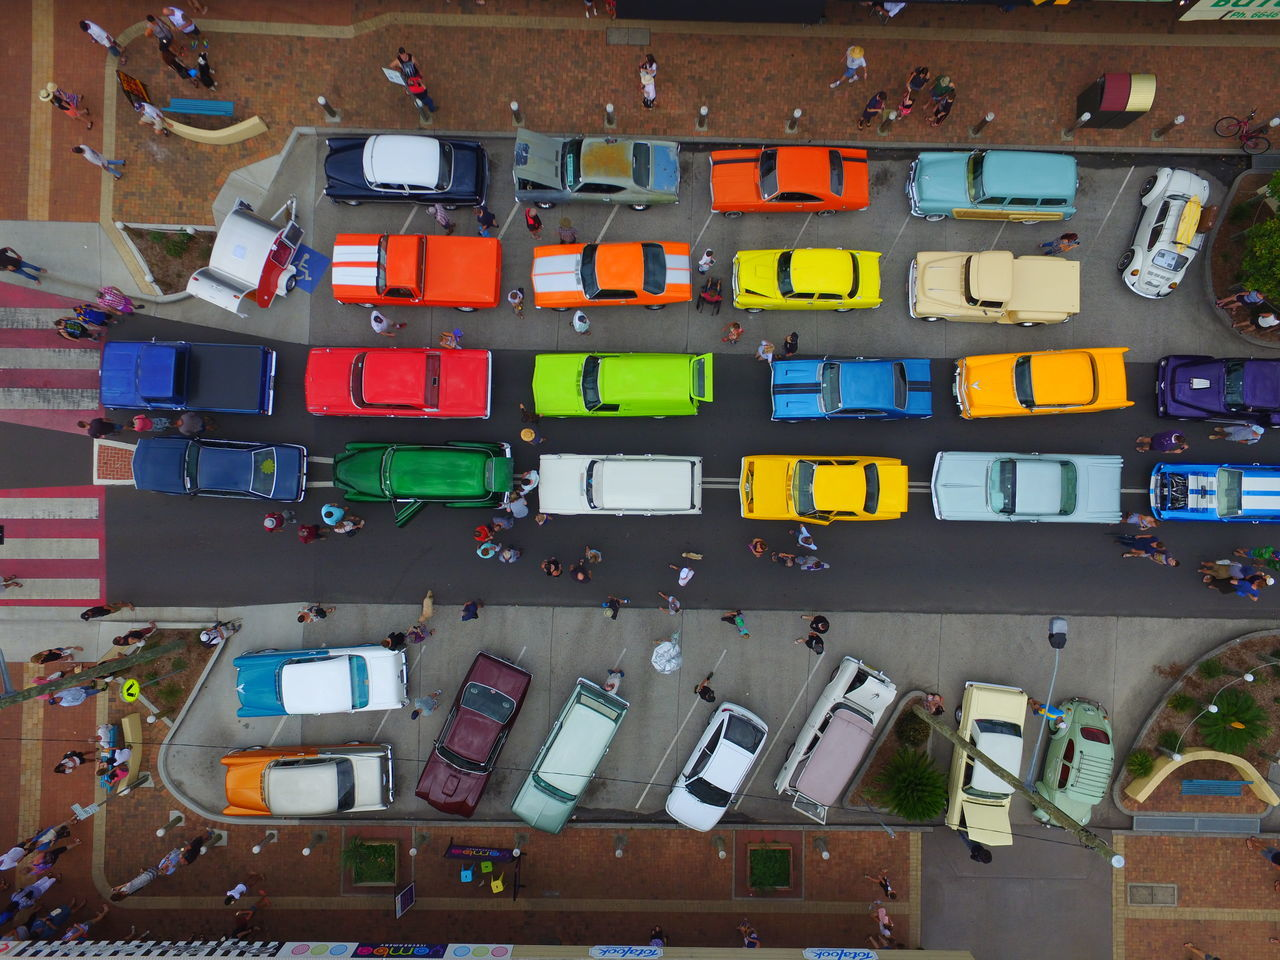 Old Timer Show, East Coast, Australia Aerial Shot Architecture Birds Eye View Building Exterior Business Finance And Industry Car CarShow City City Life Day Dji Drone  Droneshot EyeEm Best Shots High Angle View Multi Colored No People Old Car Oldtimer Rainbow Technology Urban Photography Urban Skyline Flying High Urbanphotography